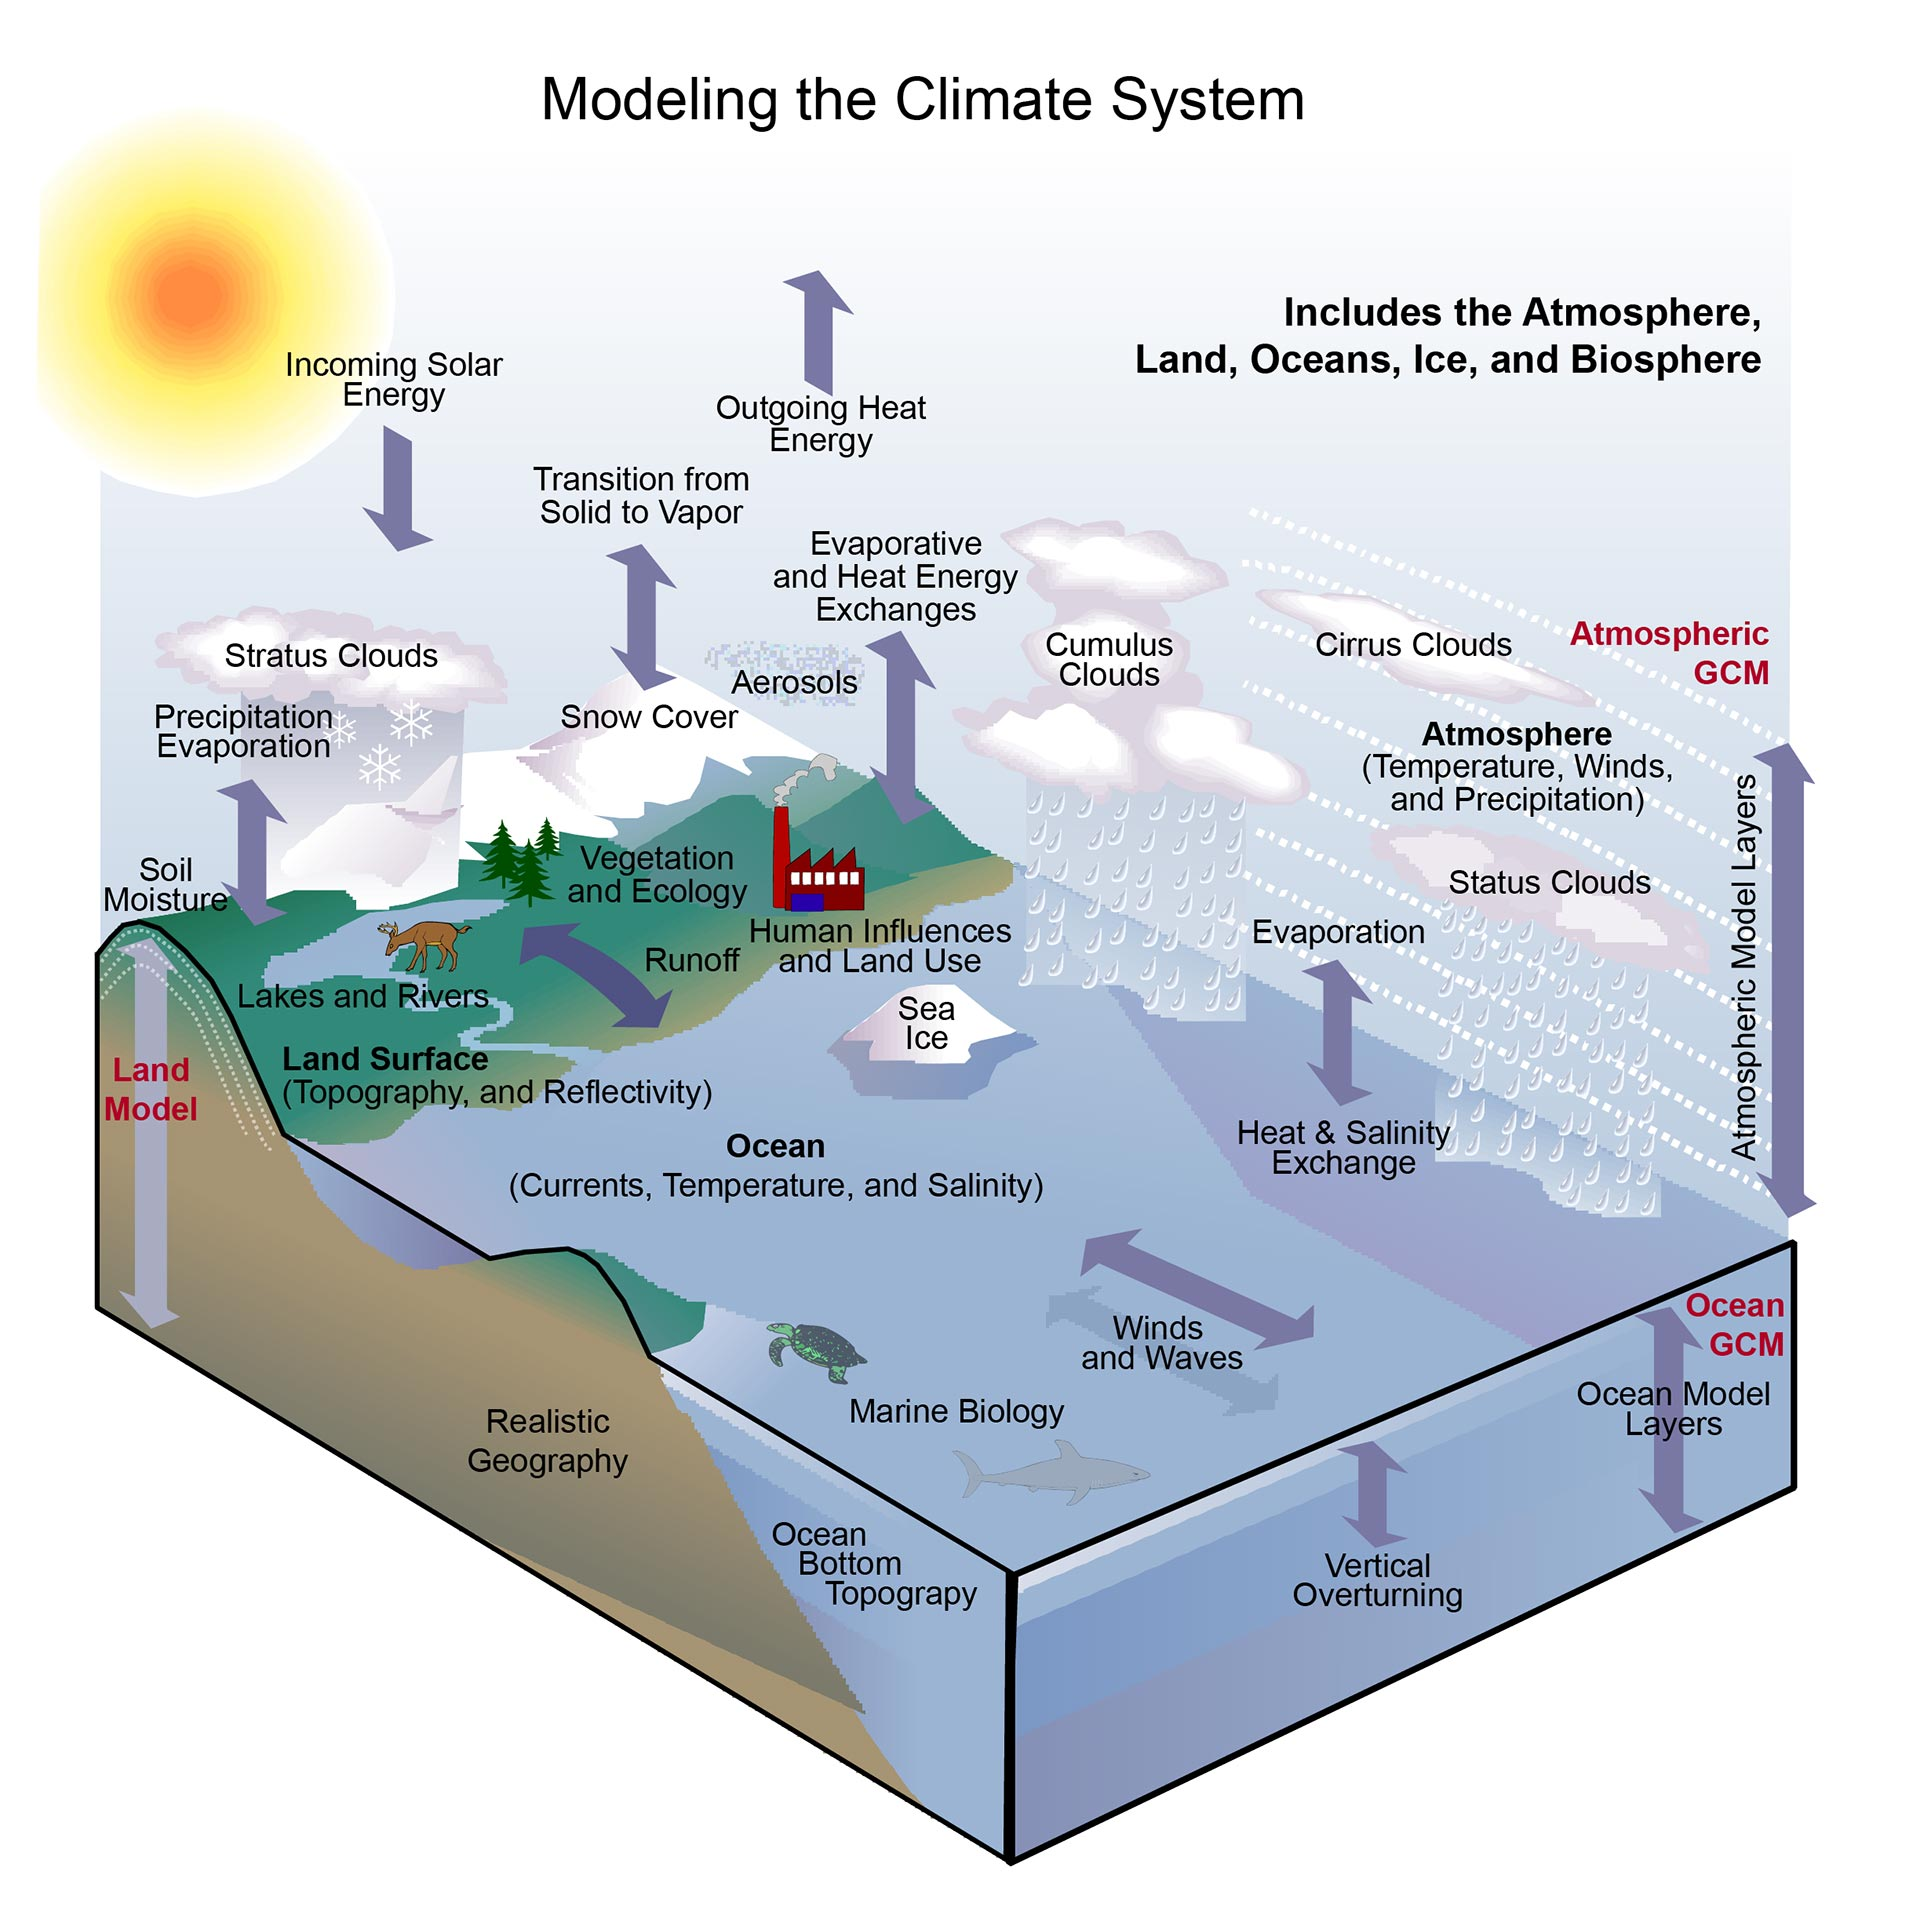 Weather And Climate : Modeling the climate system national assessment